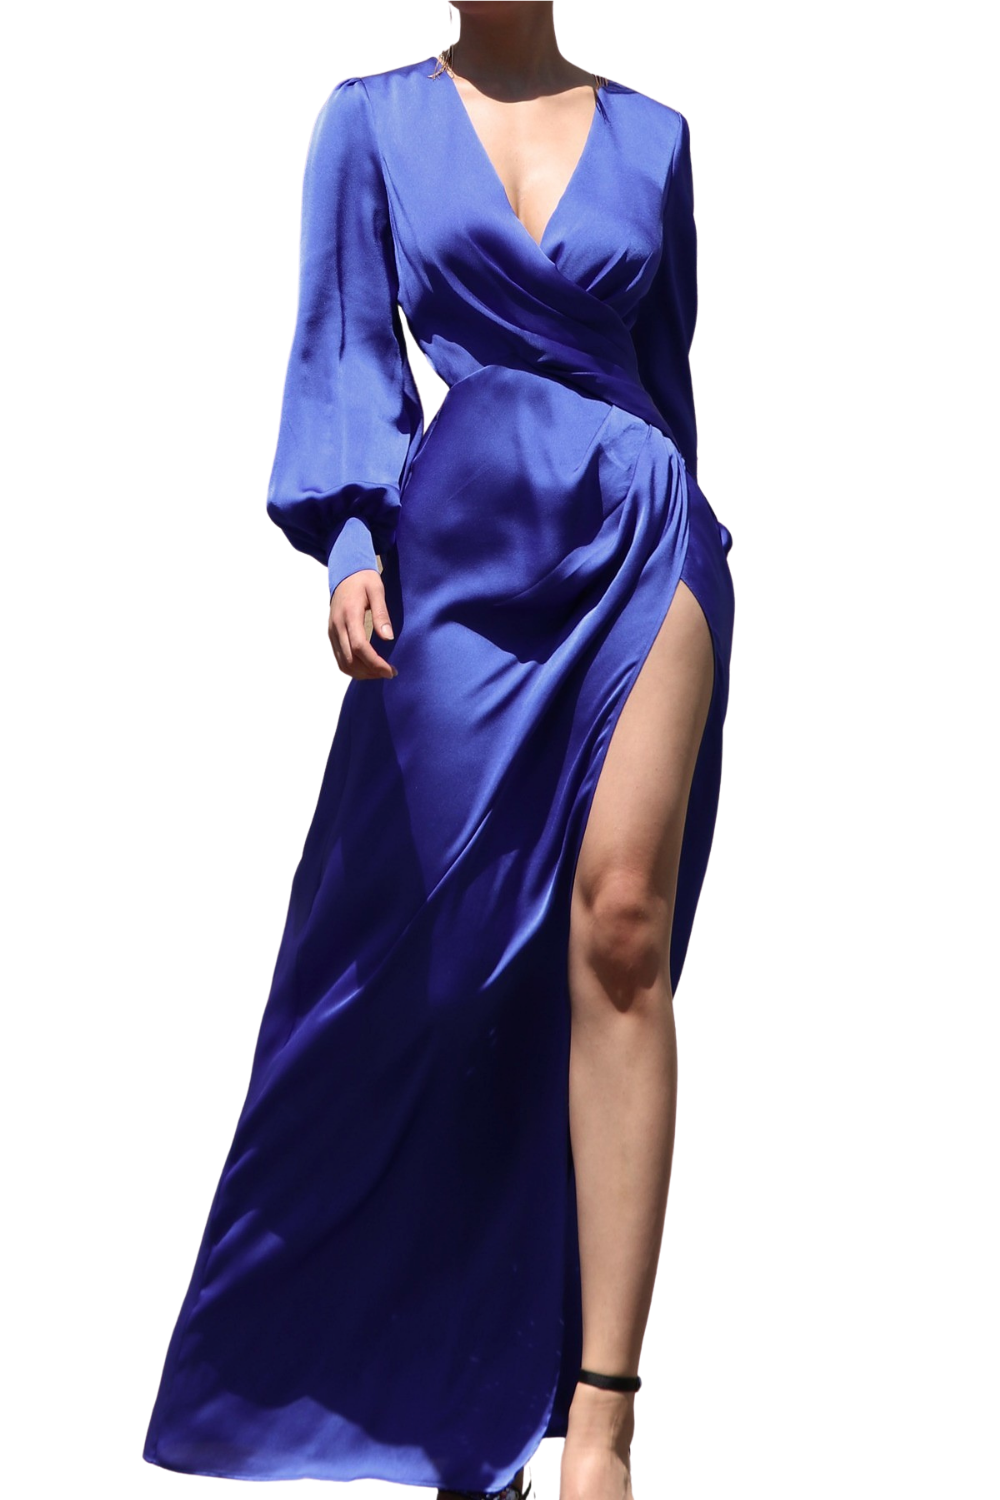 Cinderella Satin Dress